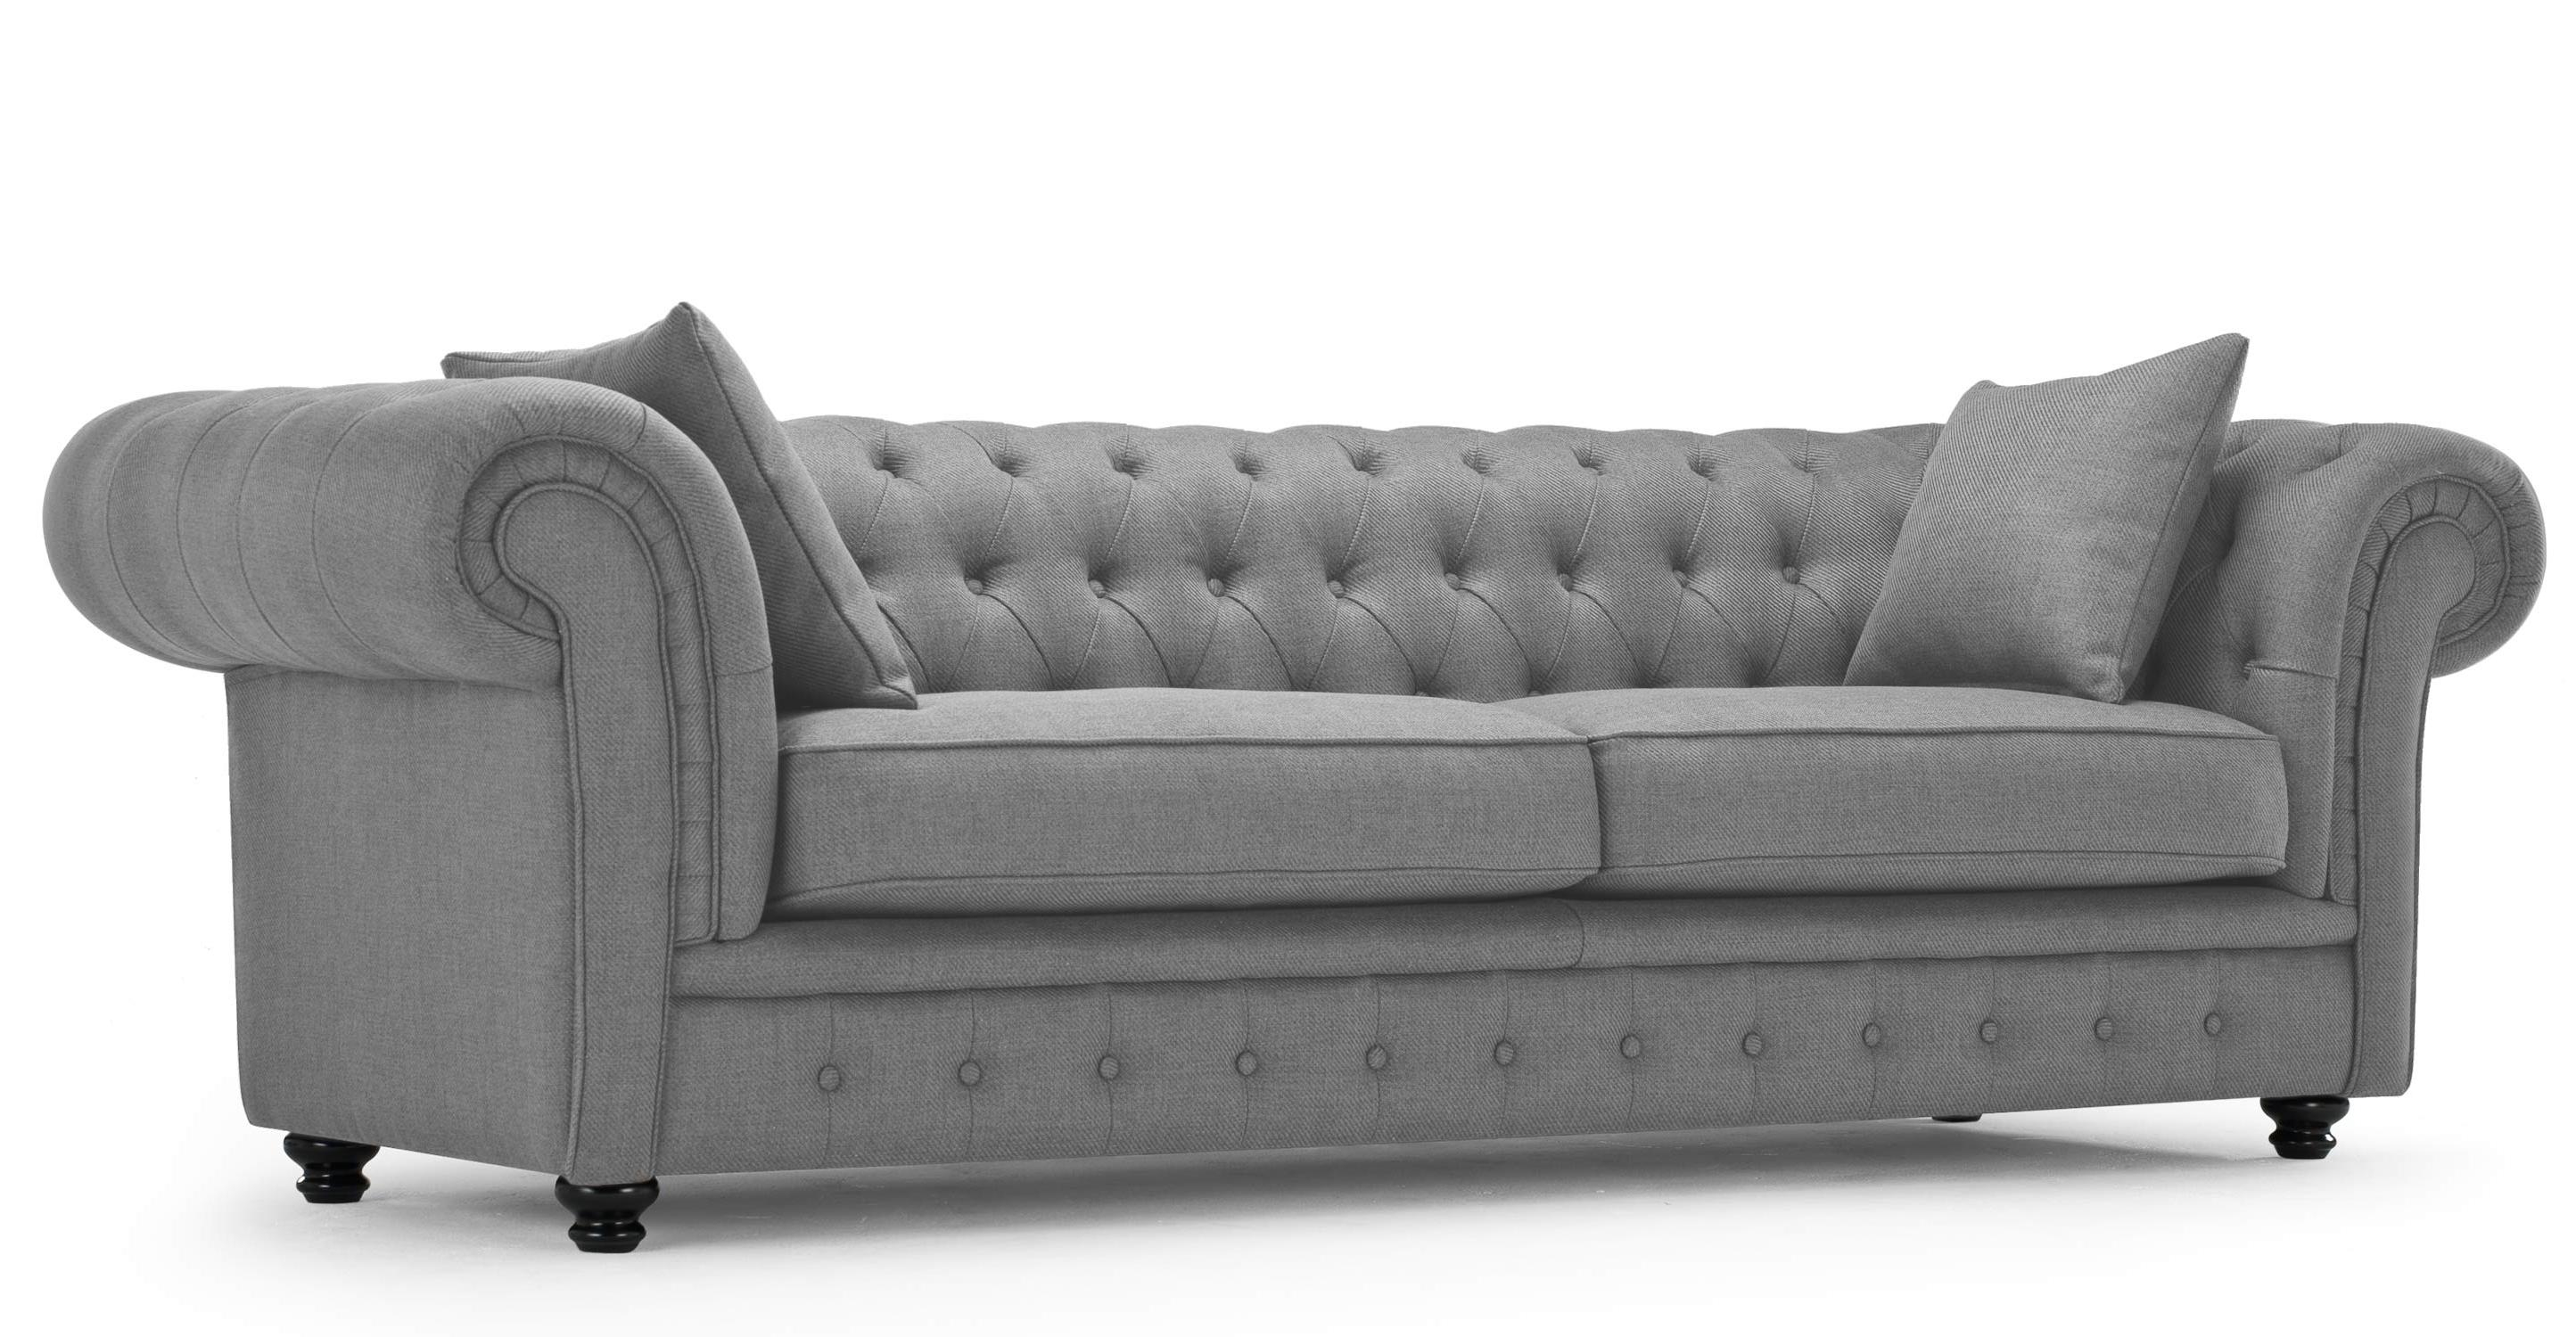 Storage Ethan Allen Chesterfield Sofa Ethan Allen Sofa Bed Ethan With Regard To Ethan Allen Chesterfield Sofas (View 12 of 20)